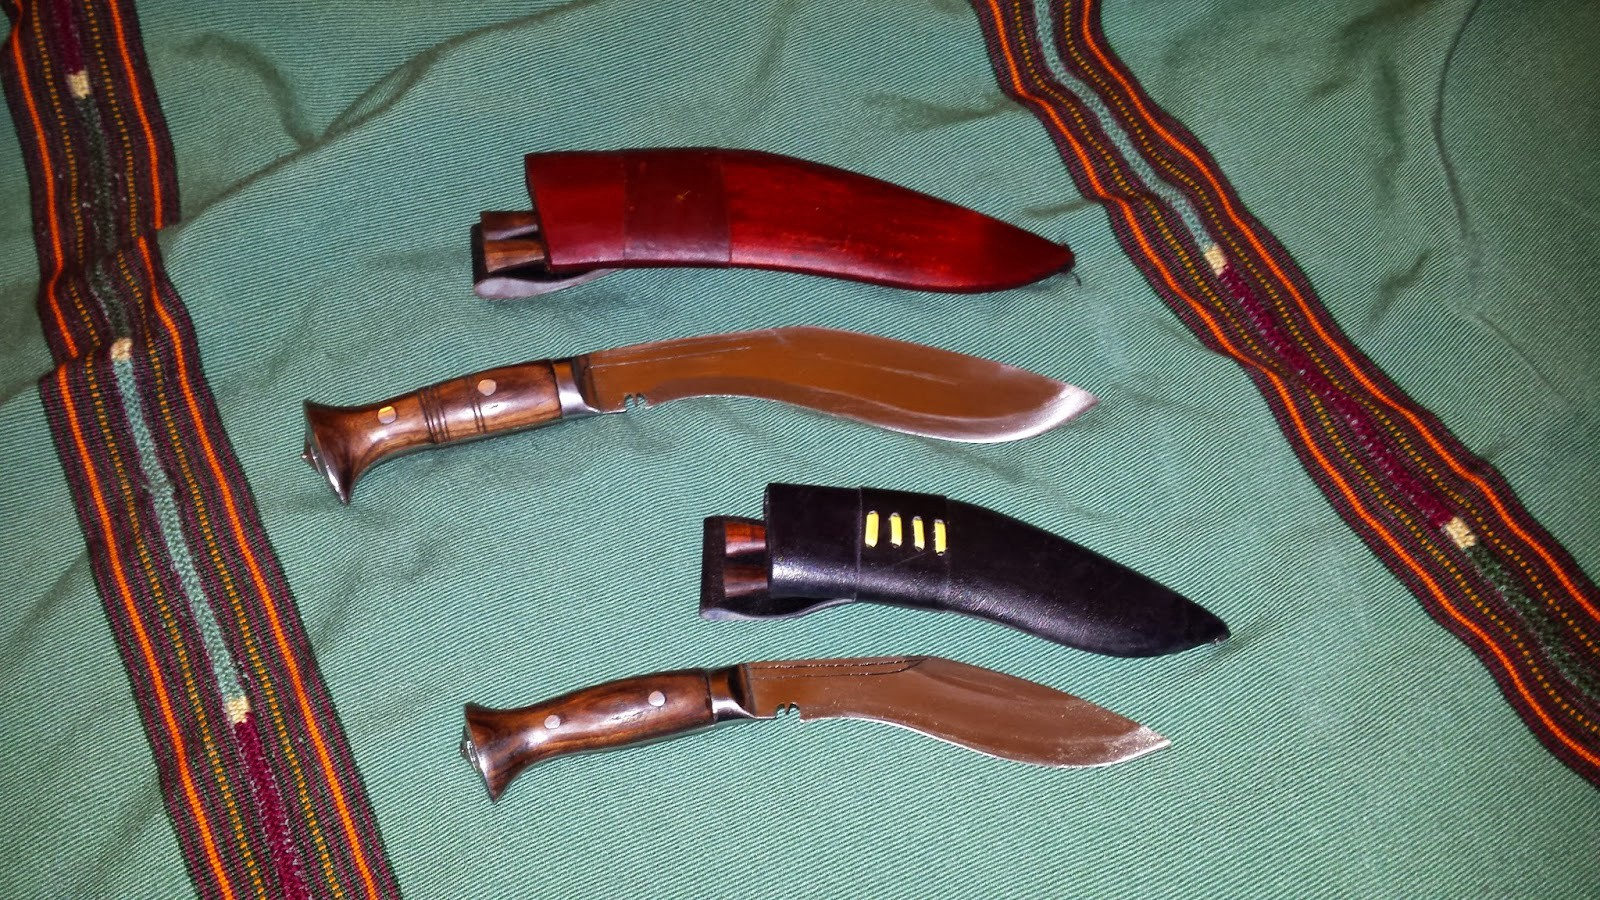 """Kukri knives with 10"""" and 7"""" blades laid out on an unmade bed"""